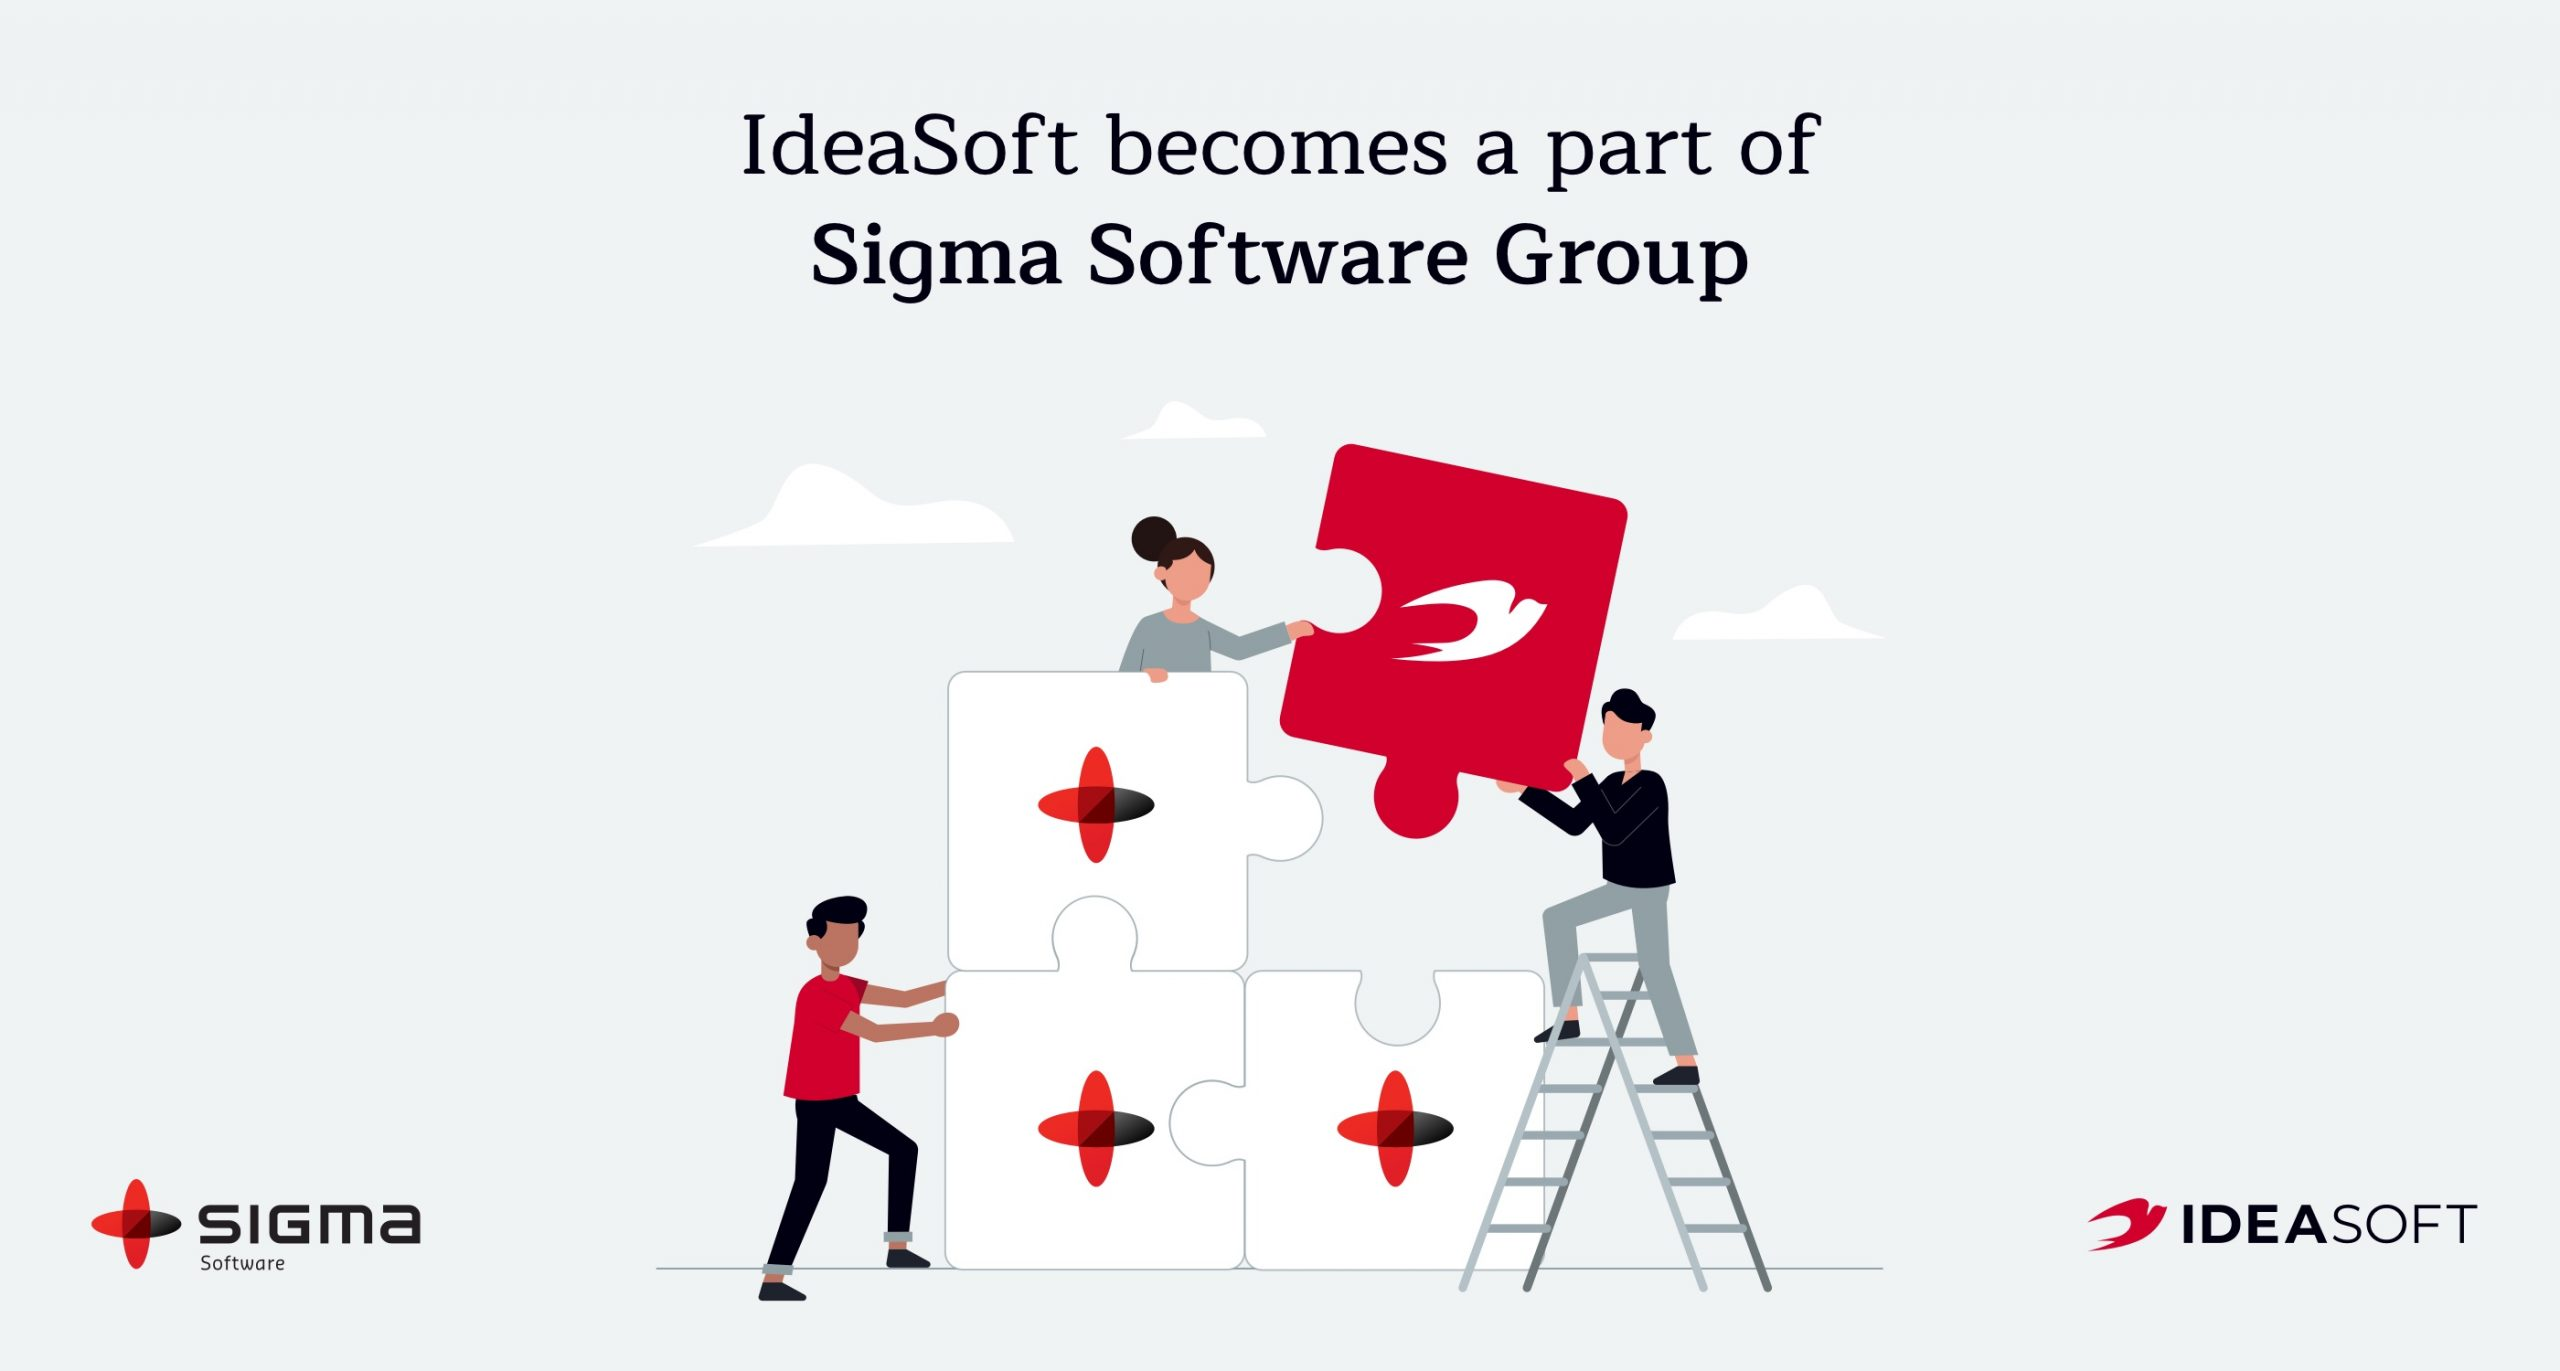 IdeaSoft becomes part of Sigma Software Group